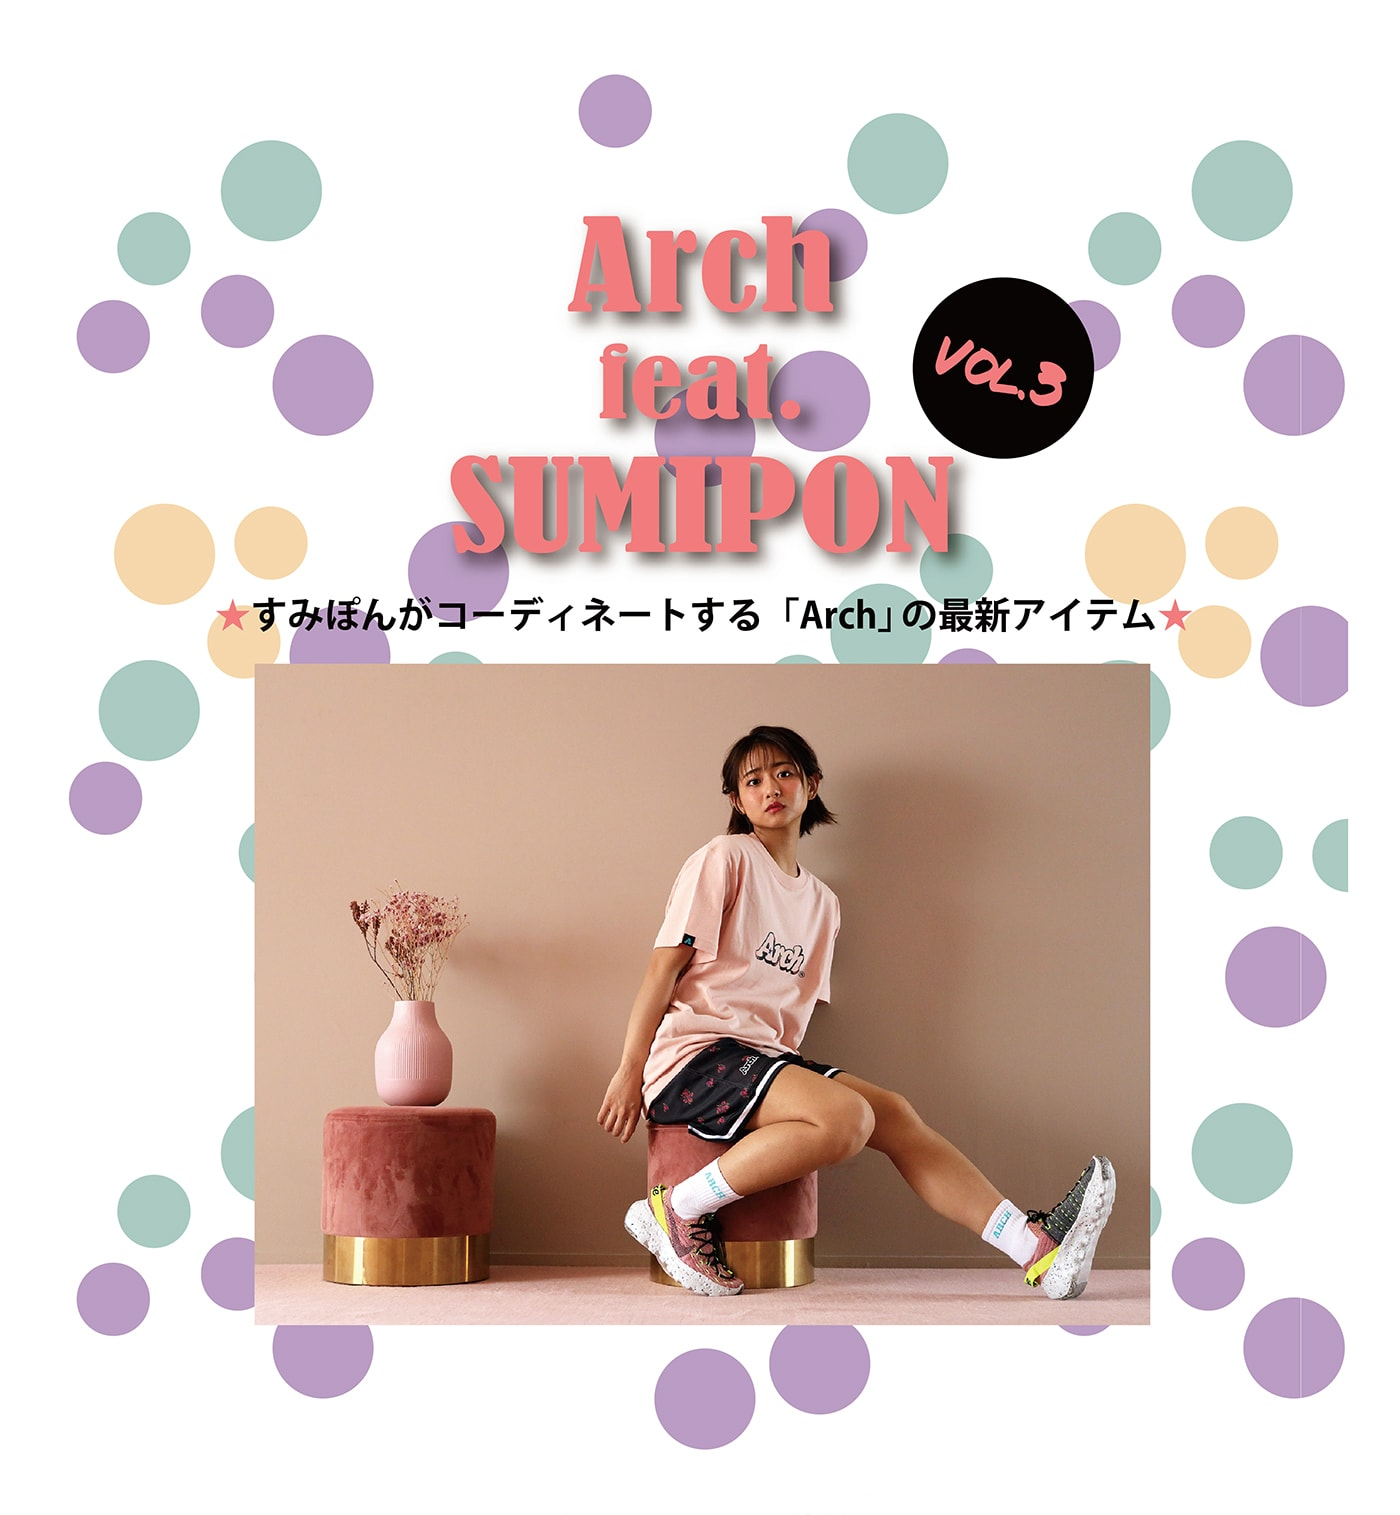 Arch feat. SUMIPON VOL.3